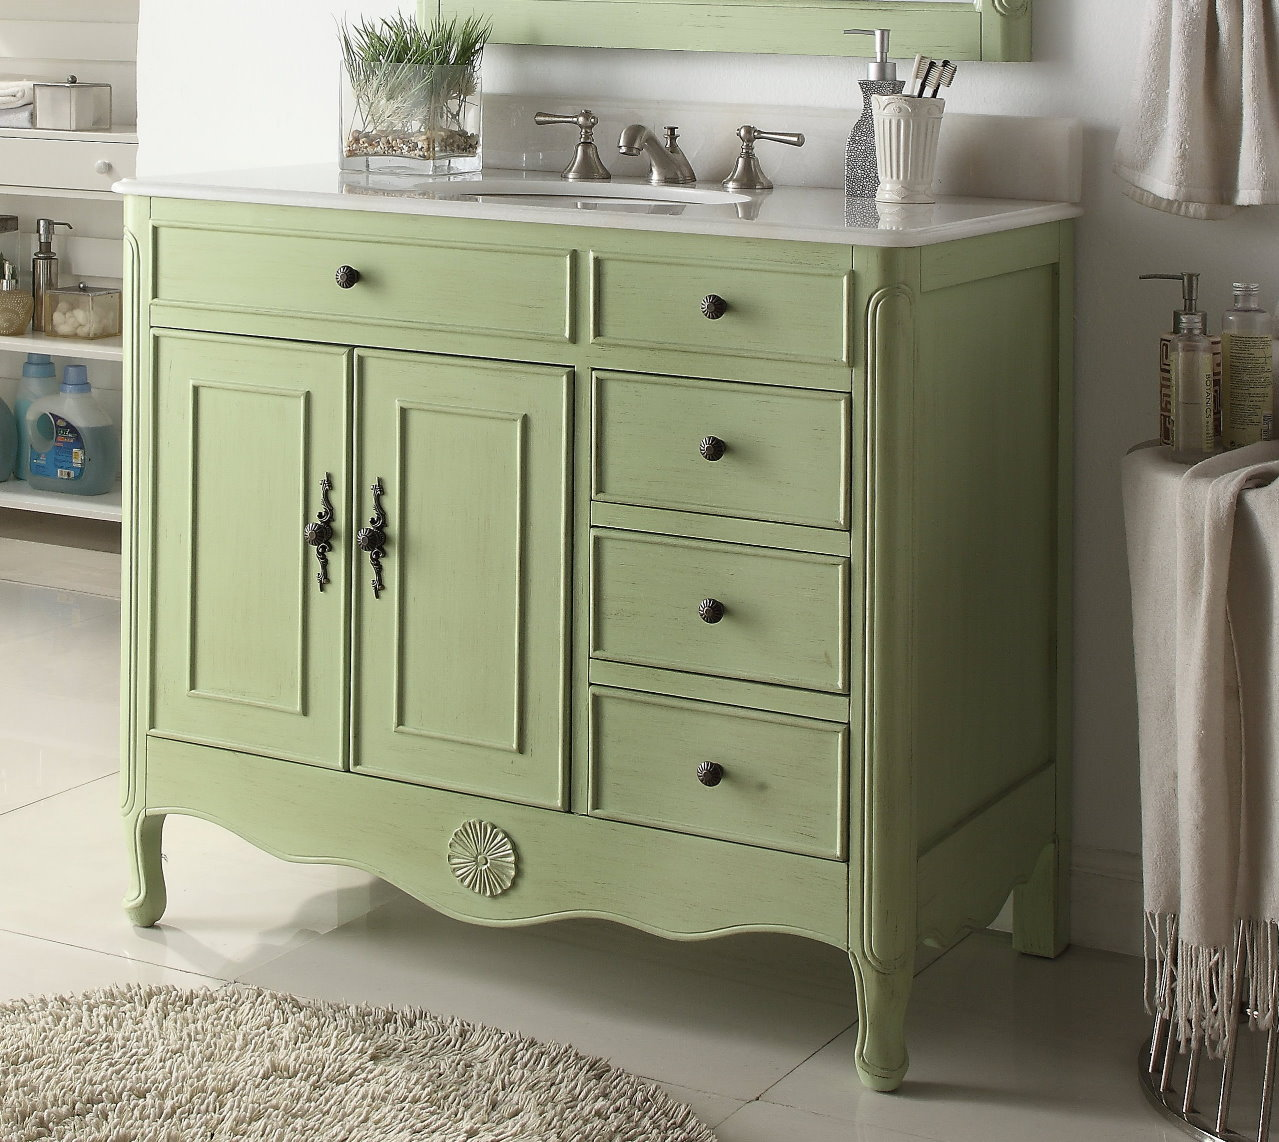 38 inch bathroom vanity with 3 drawers on the right cottage style distressed vintage green color for Bathroom vanities vintage style